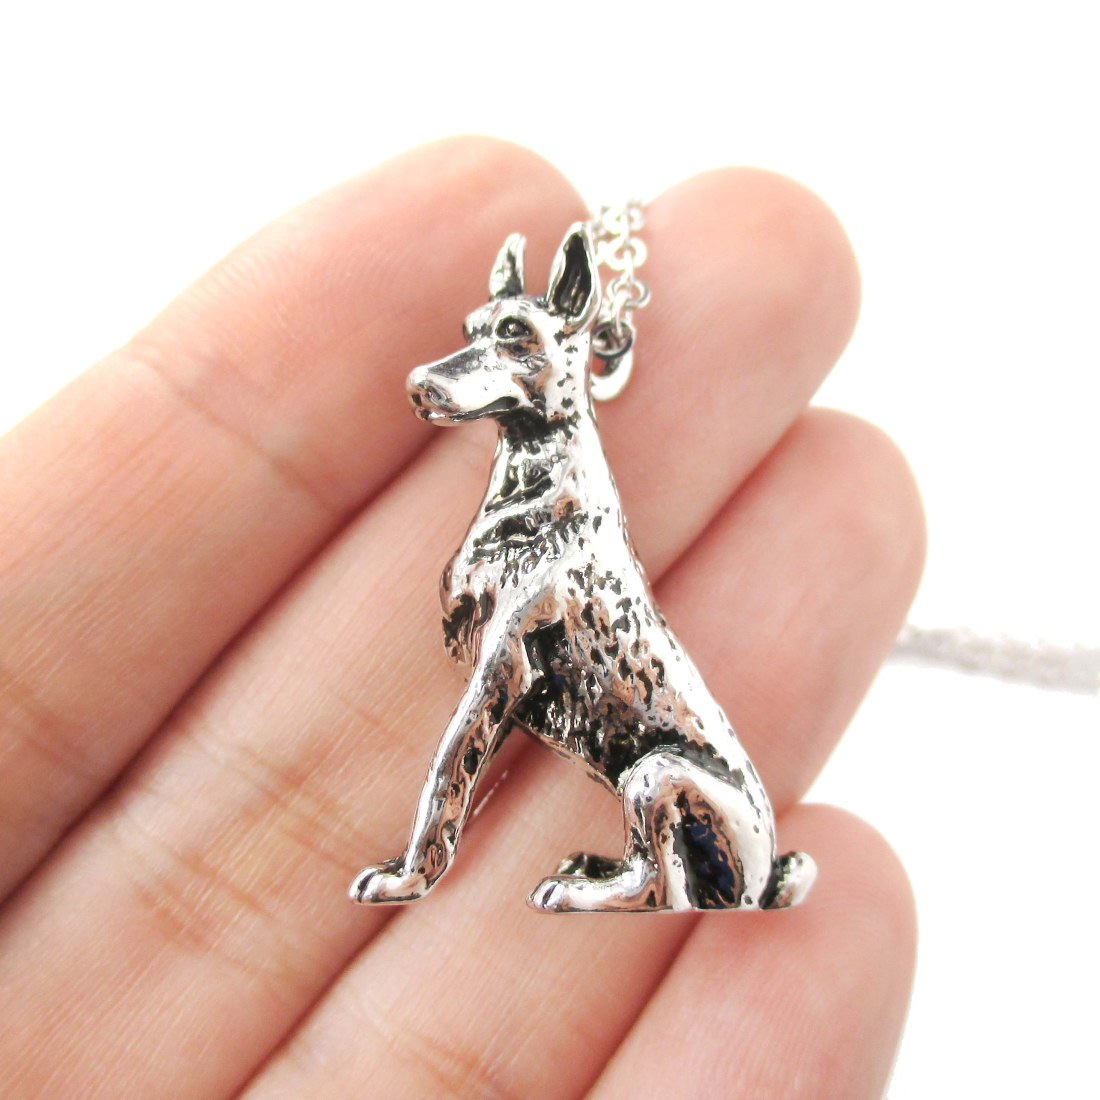 3d realistic doberman pinscher dog breed animal charm necklace in 3d realistic doberman pinscher dog breed animal charm necklace in shiny silver aloadofball Image collections